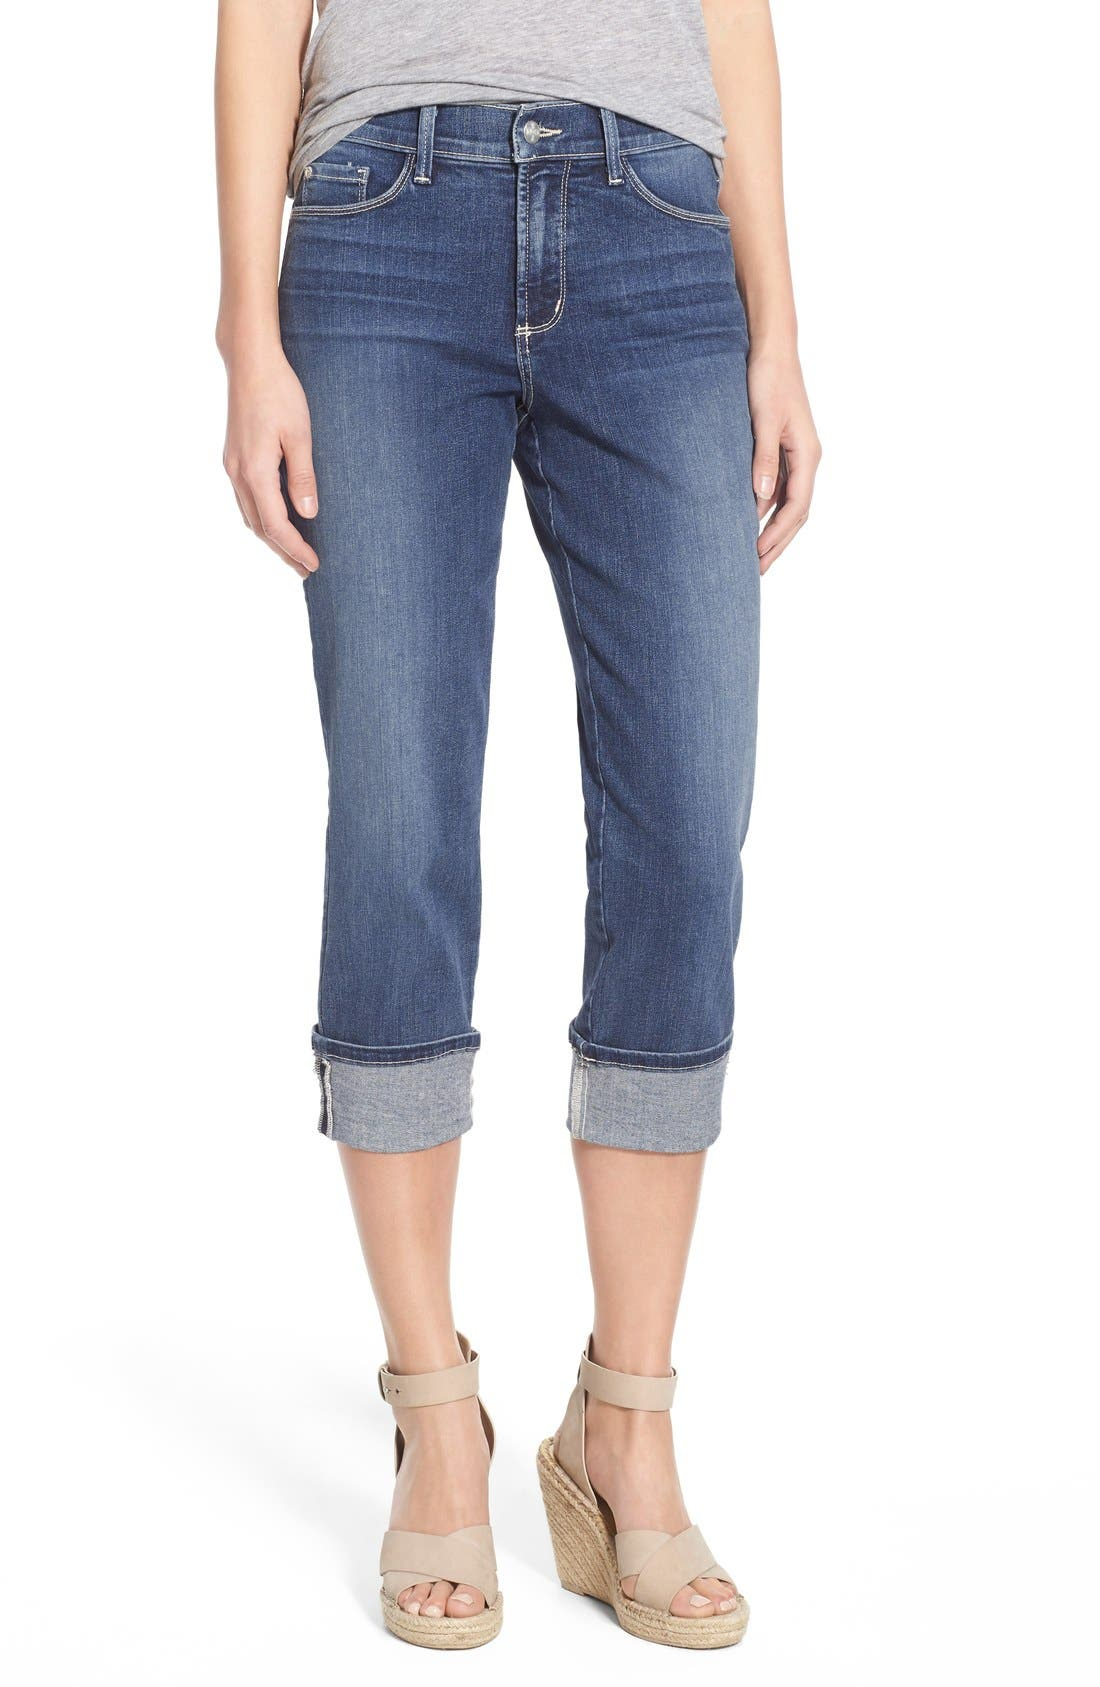 NYDJ 'Dayla' Colored Wide Cuff Capri Jeans